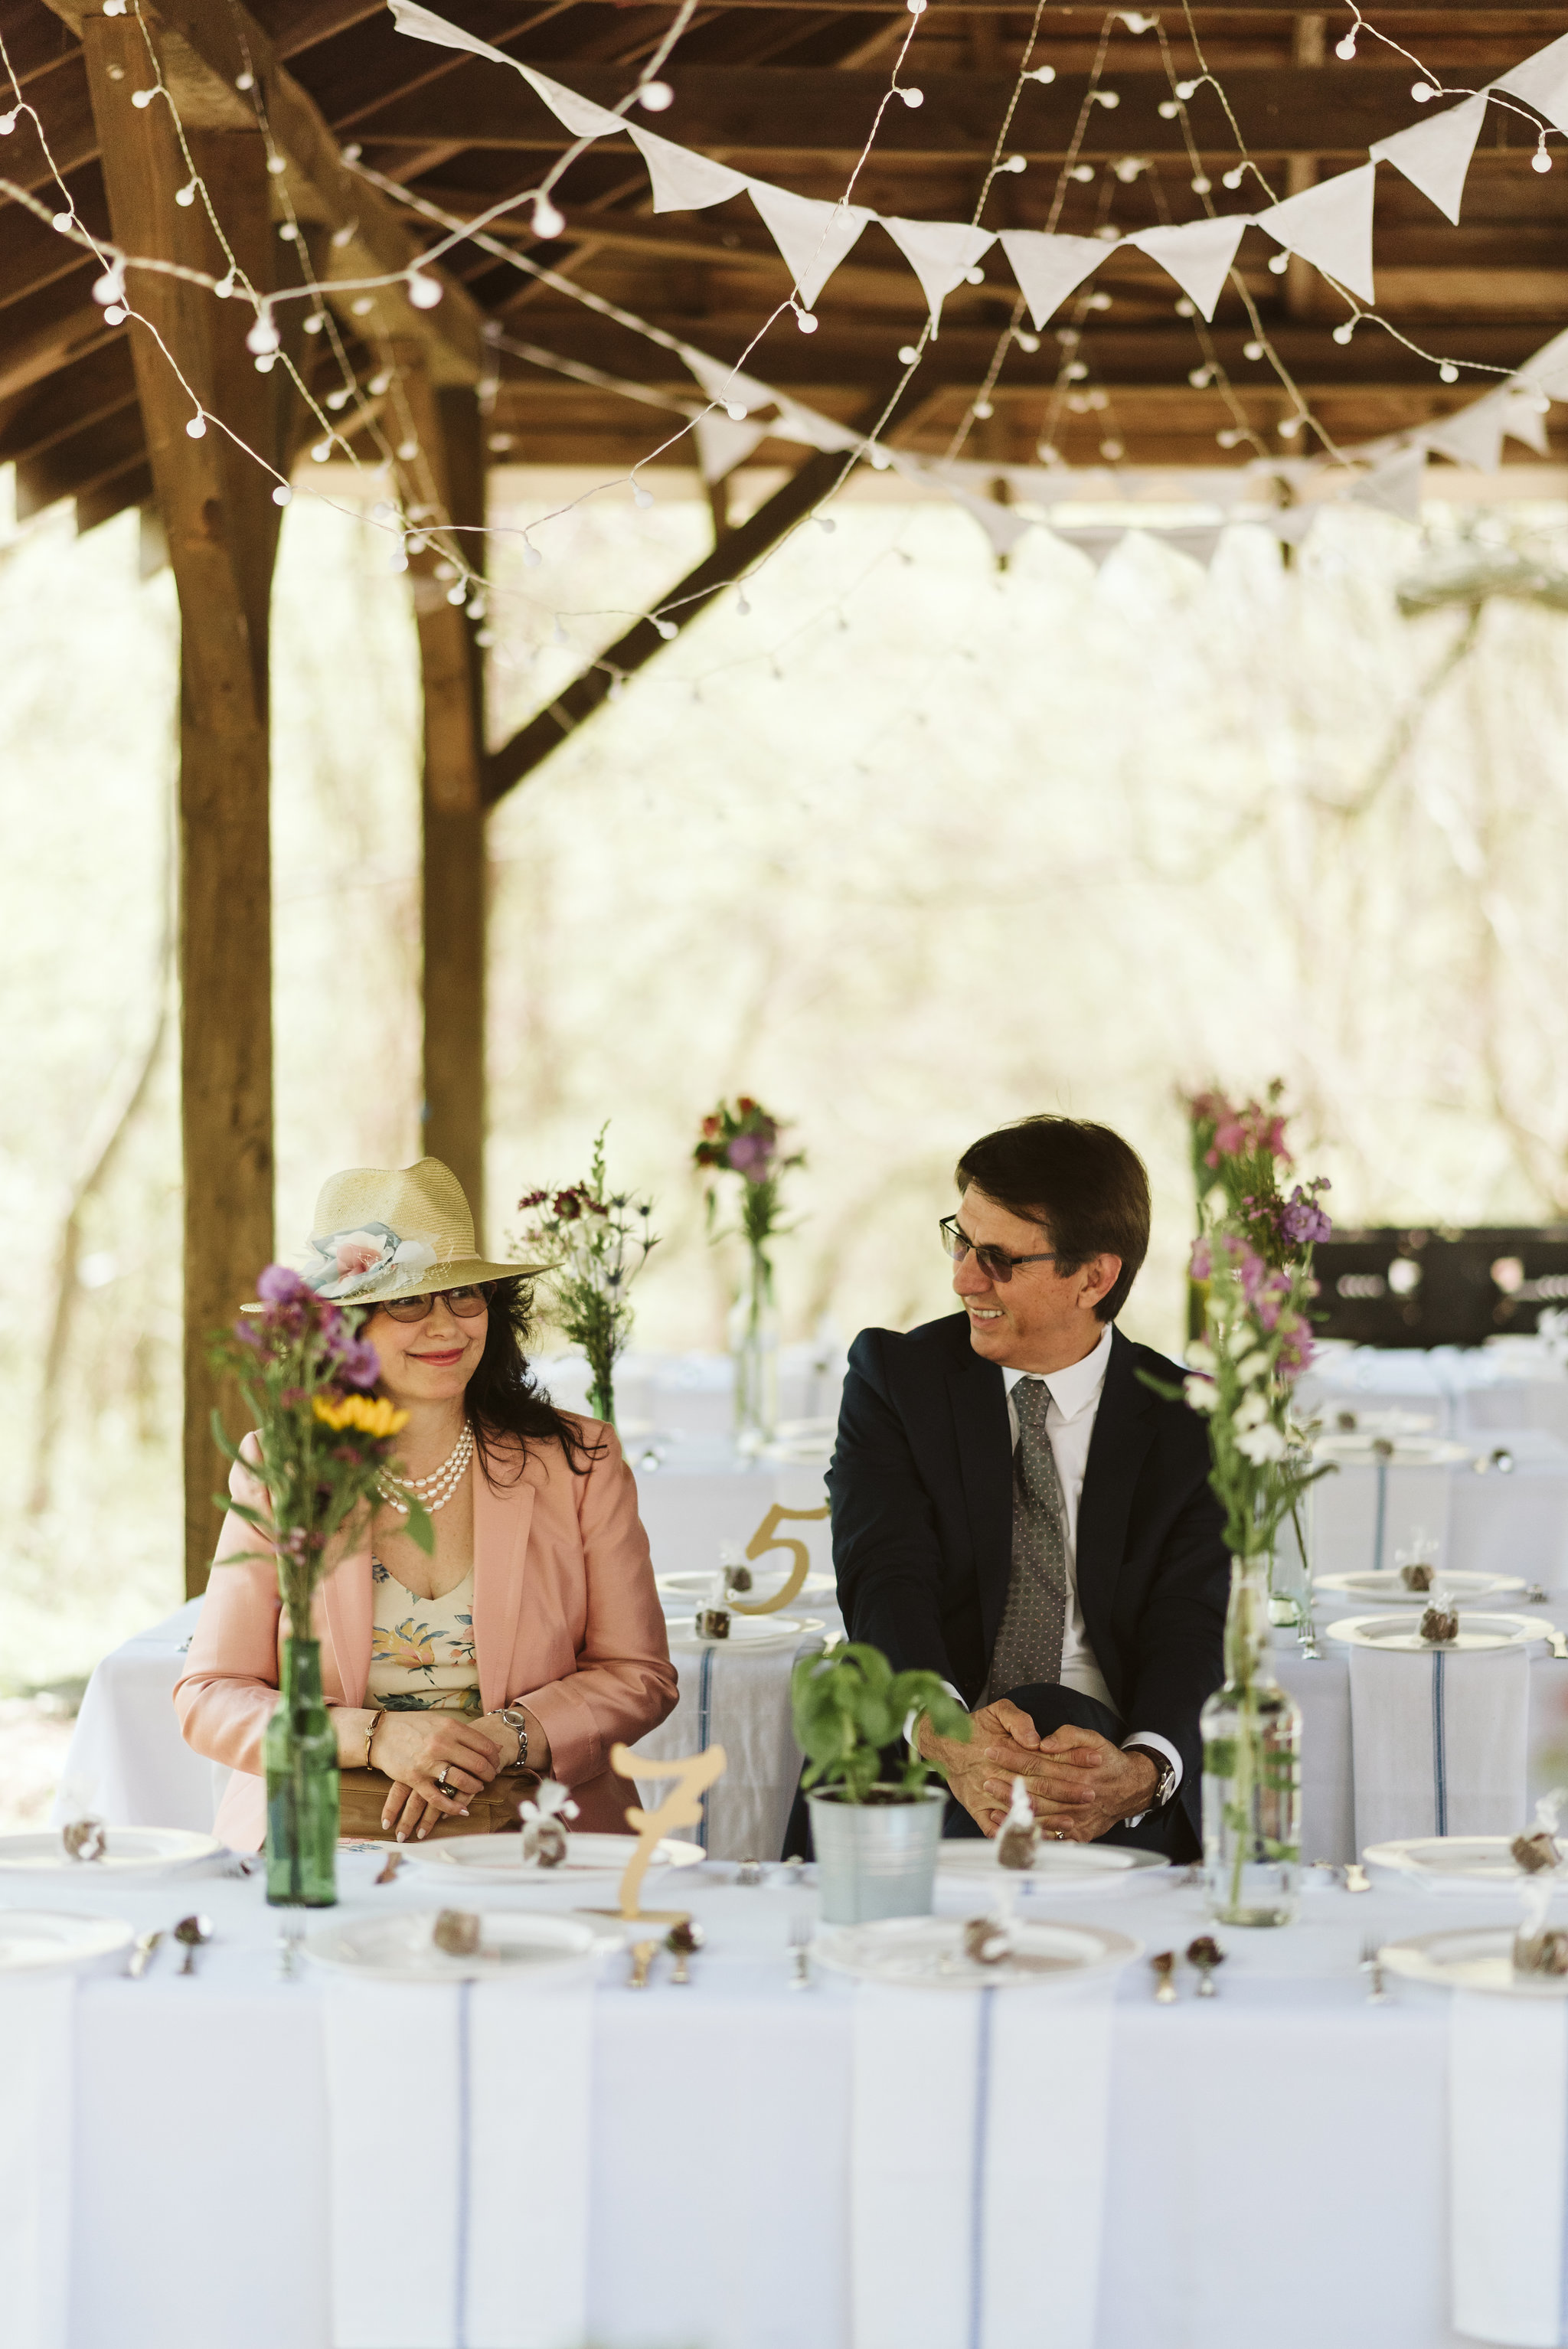 Spring Outdoor Wedding, Park, Baltimore Wedding Photographer, DIY, Classic, Upcycled, Garden Party, Romantic, Guests Gathering at Reception Tables, Wildflowers as Centerpieces